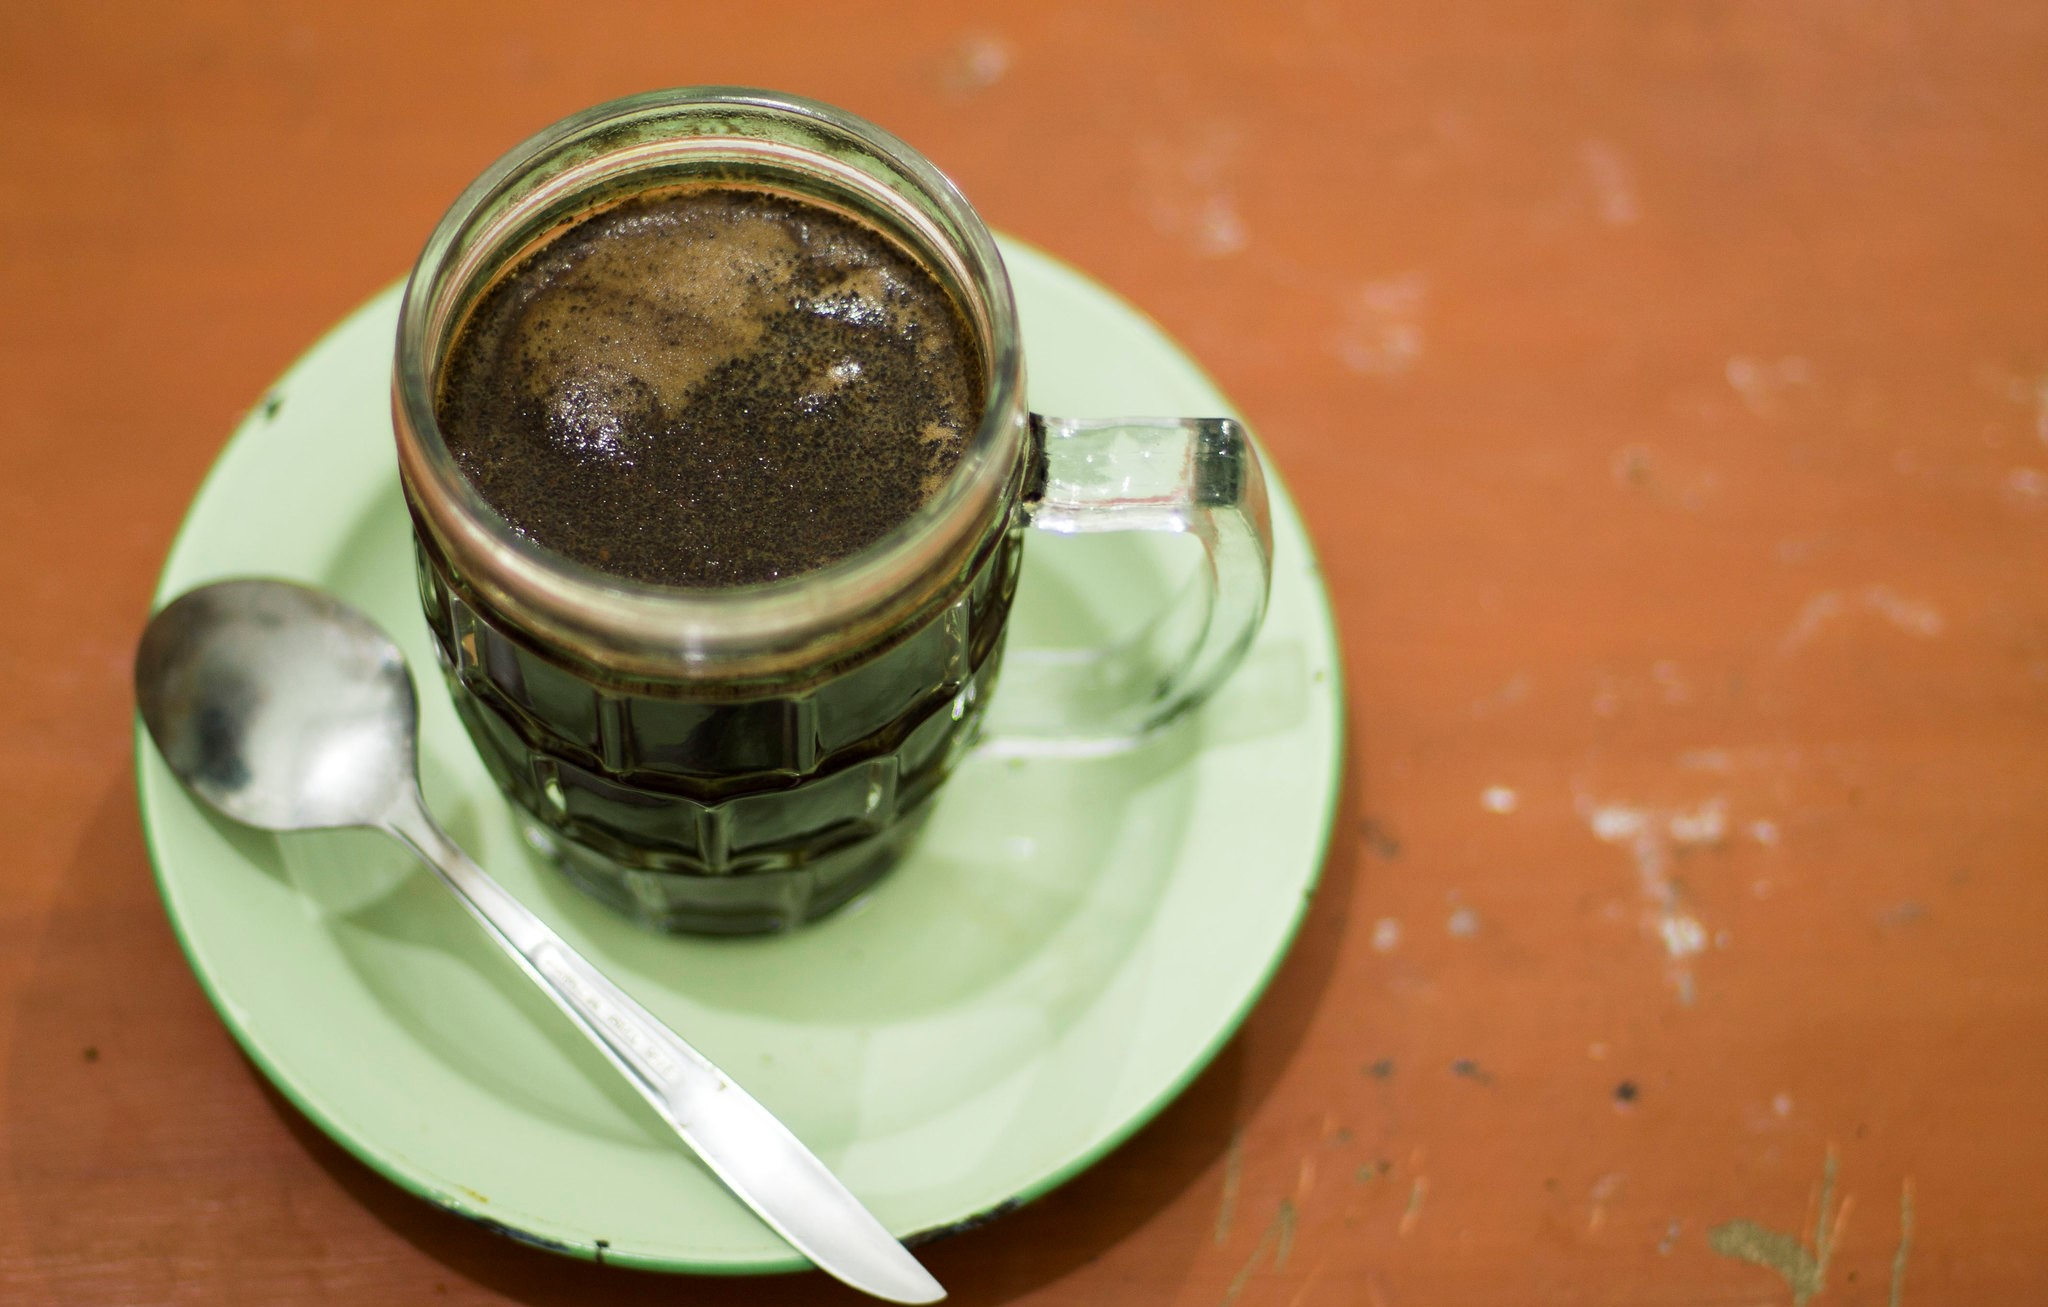 a glass mug filled with coffee